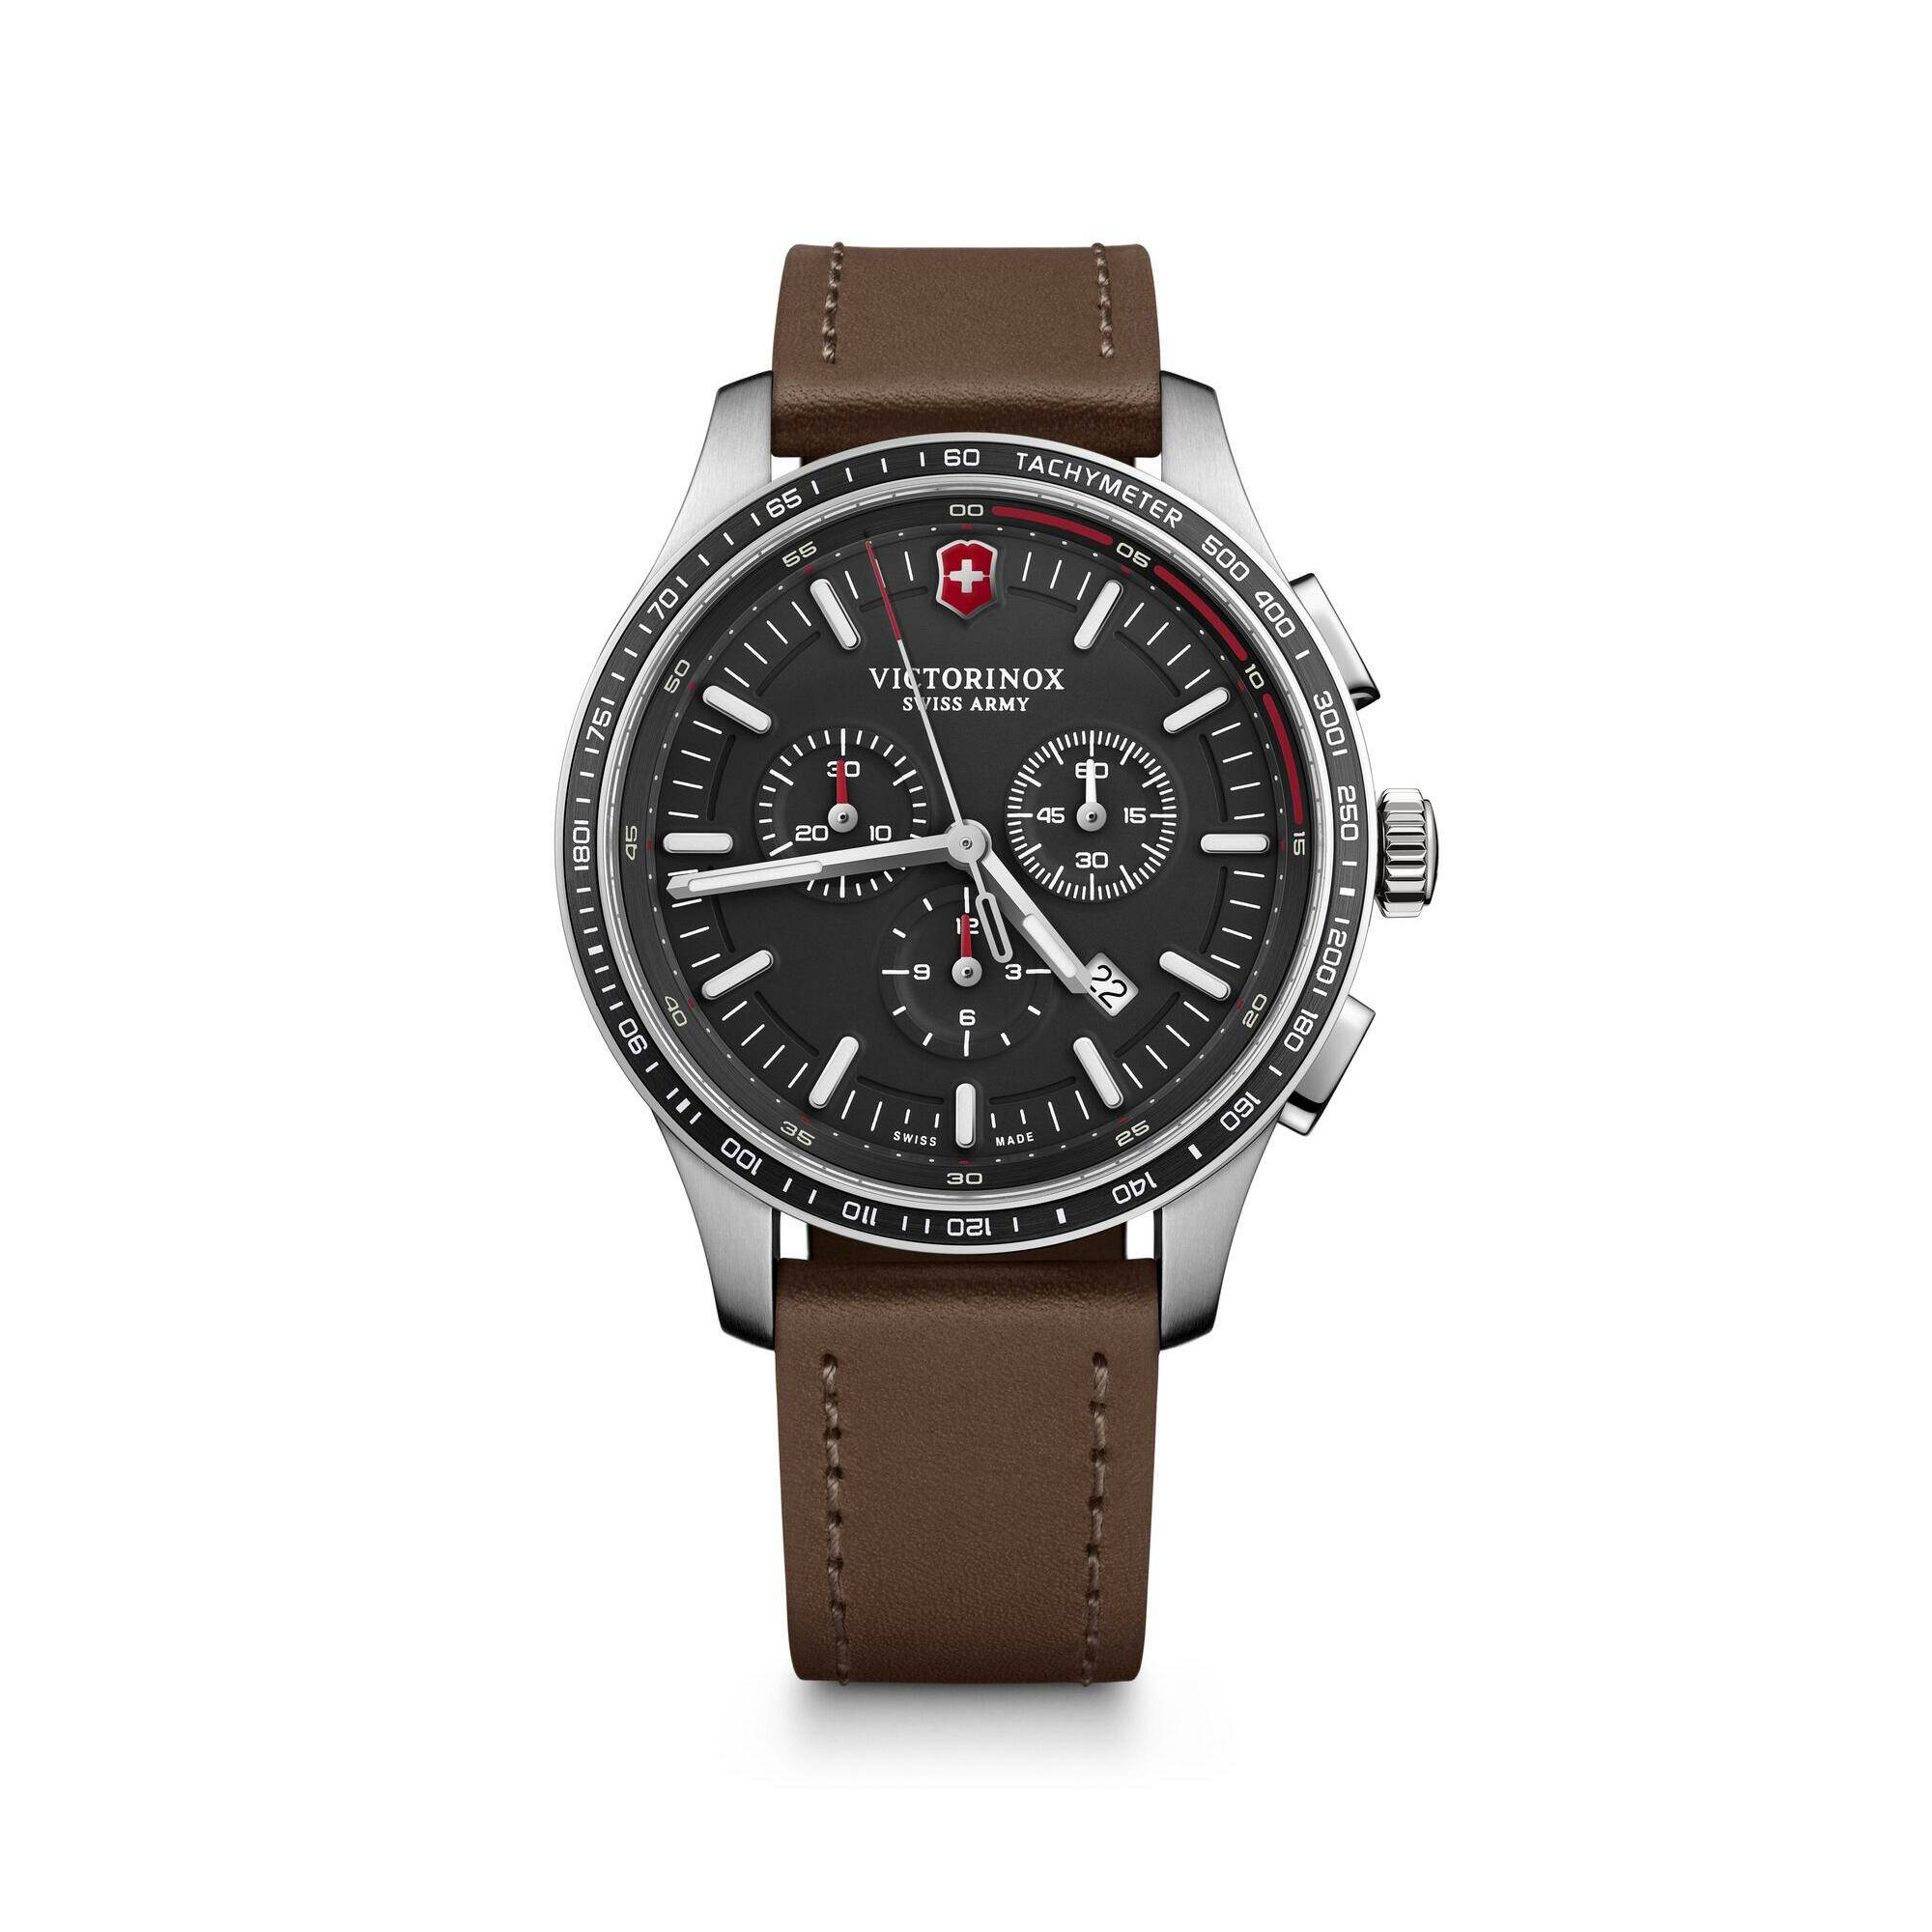 [VICTORINOX ] ALLIANCE SPORT CHRONOGRAPH BLACK DIAL BROWN